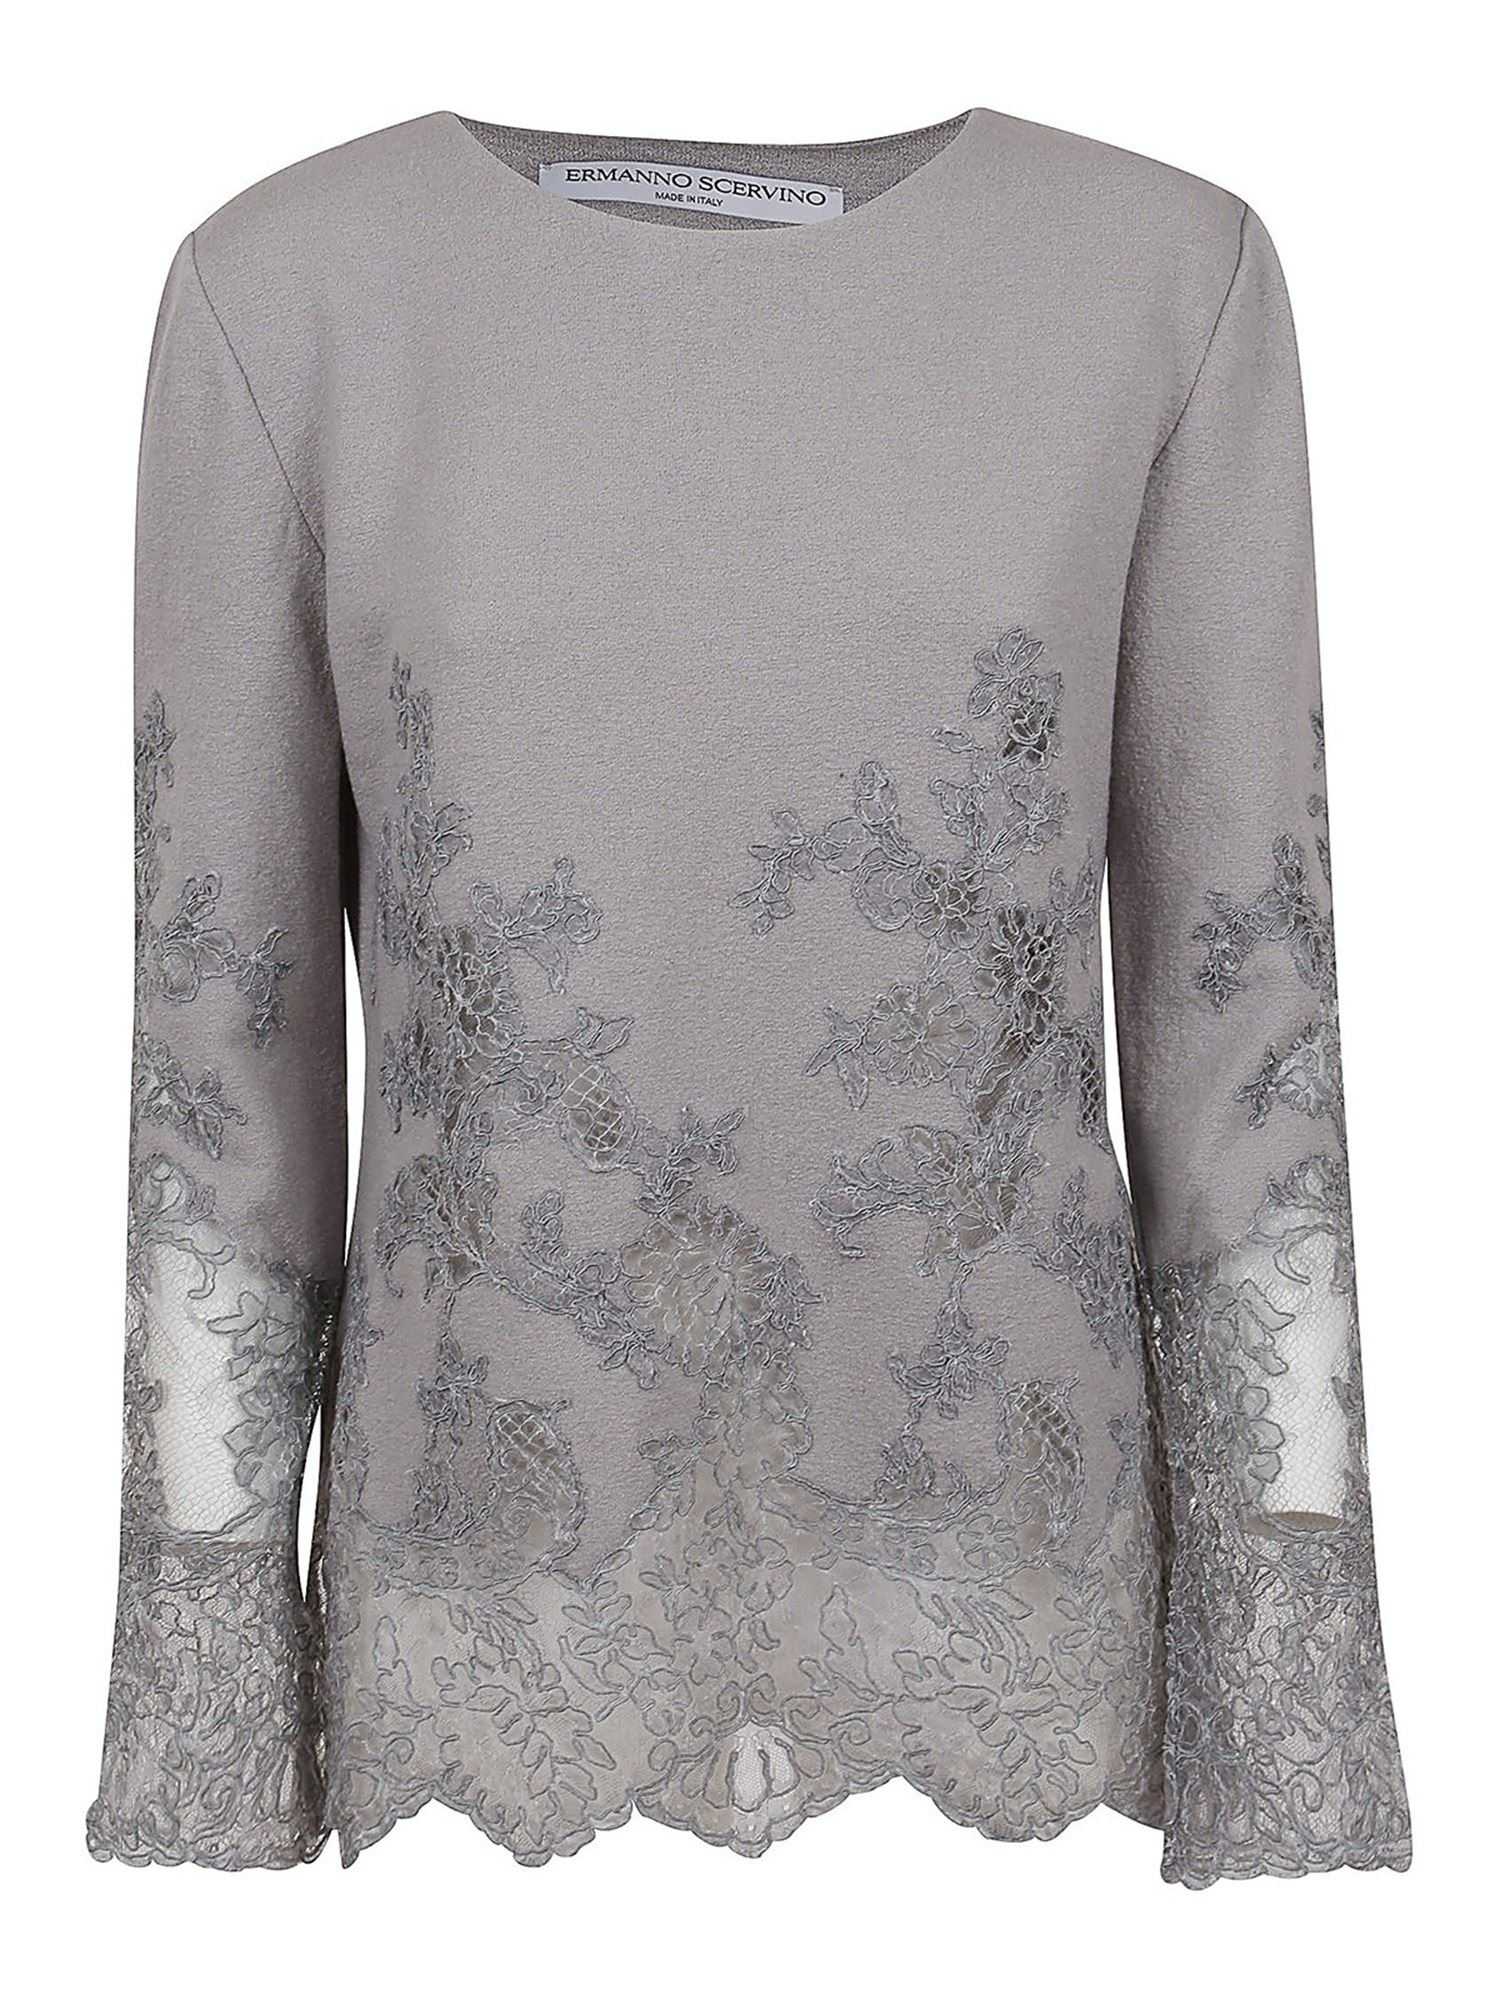 Ermanno Scervino FLORAL LACE EMBROIDERY BLOUSE